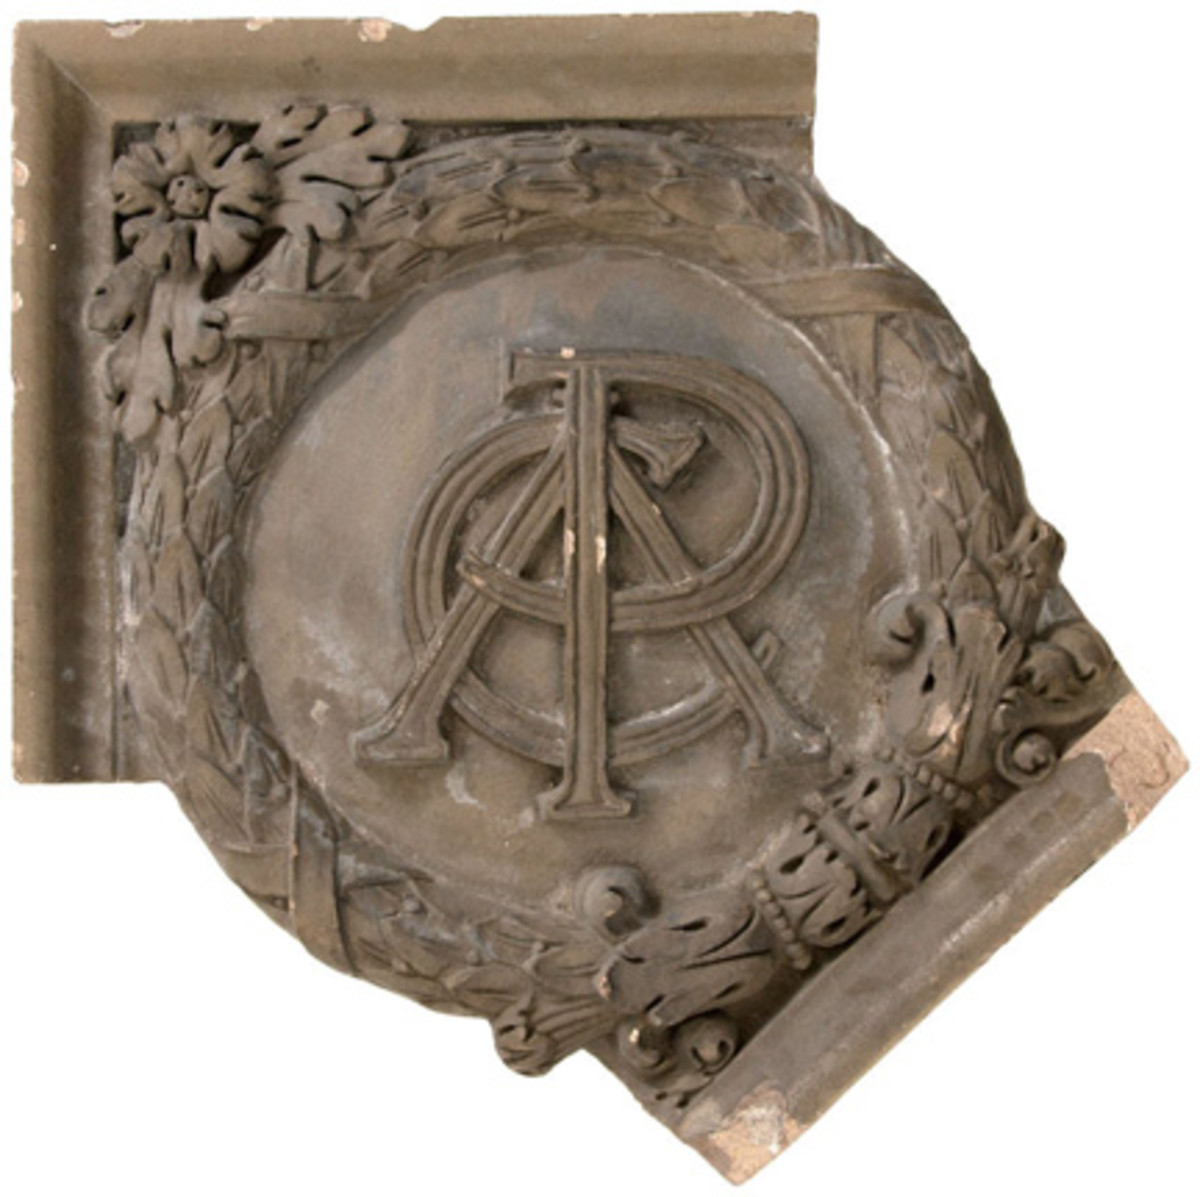 Terracotta façade haunch that survived the 1971 demolition of Pittsburgh's Forbes Field, to be auctioned Nov 12 in an online auction conducted by Hake's. Image provided by Hake's Americana & Collectibles